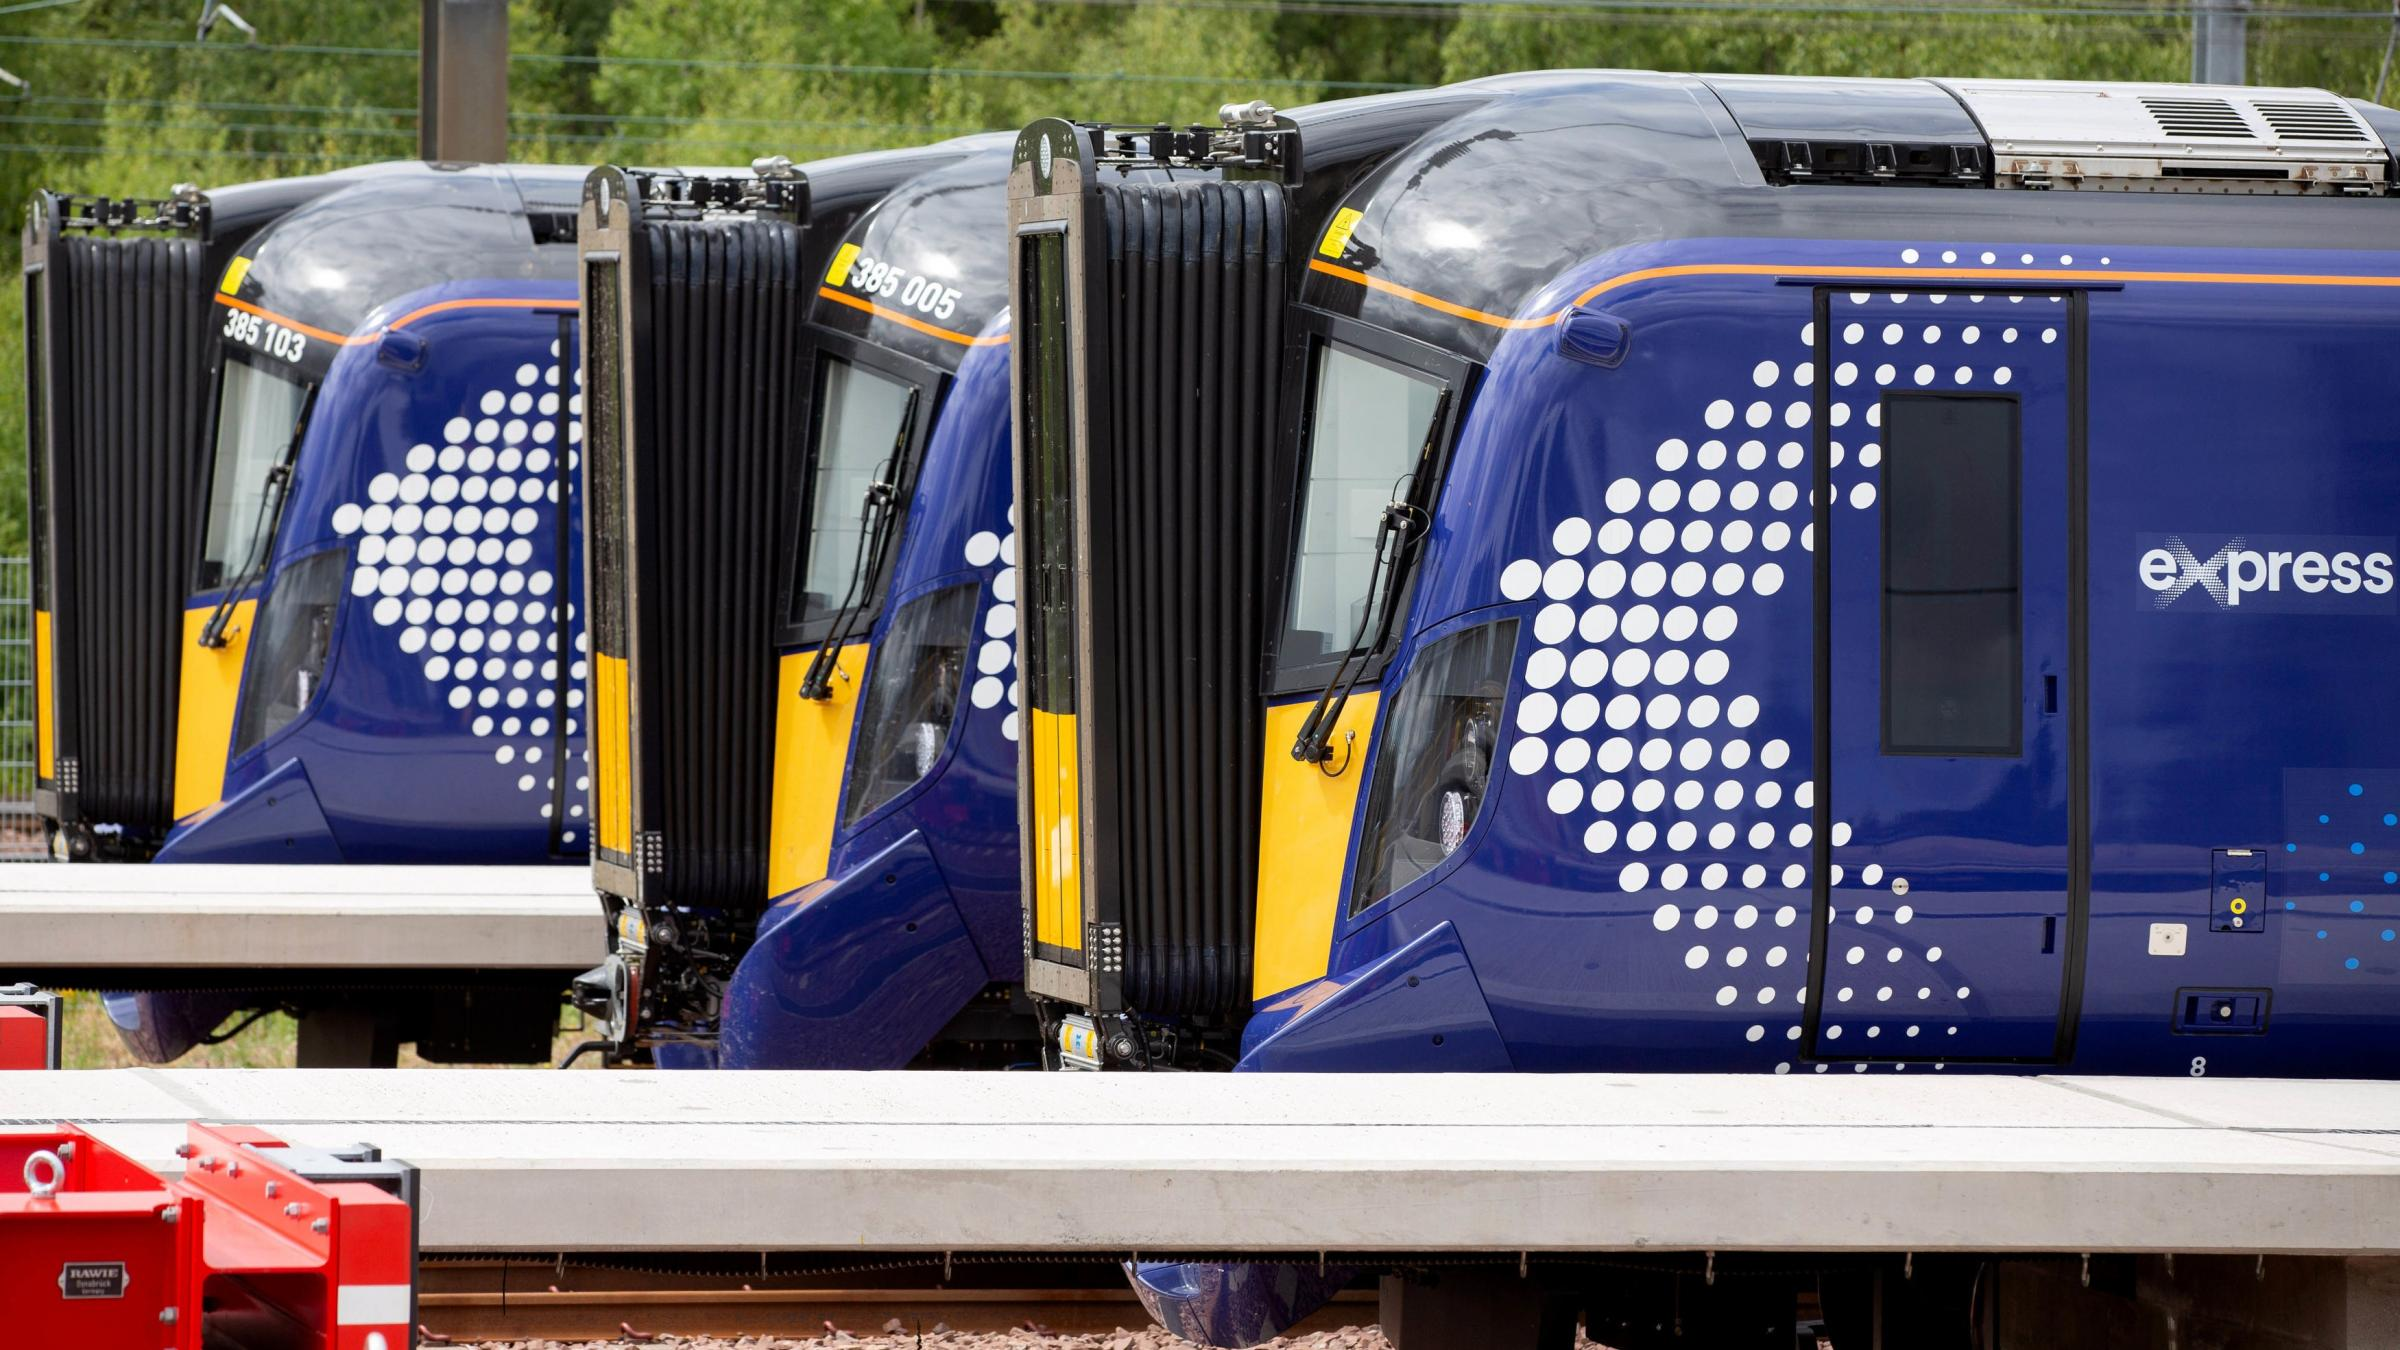 Number of ScotRail commuters who find train travel frequently stressful revealed